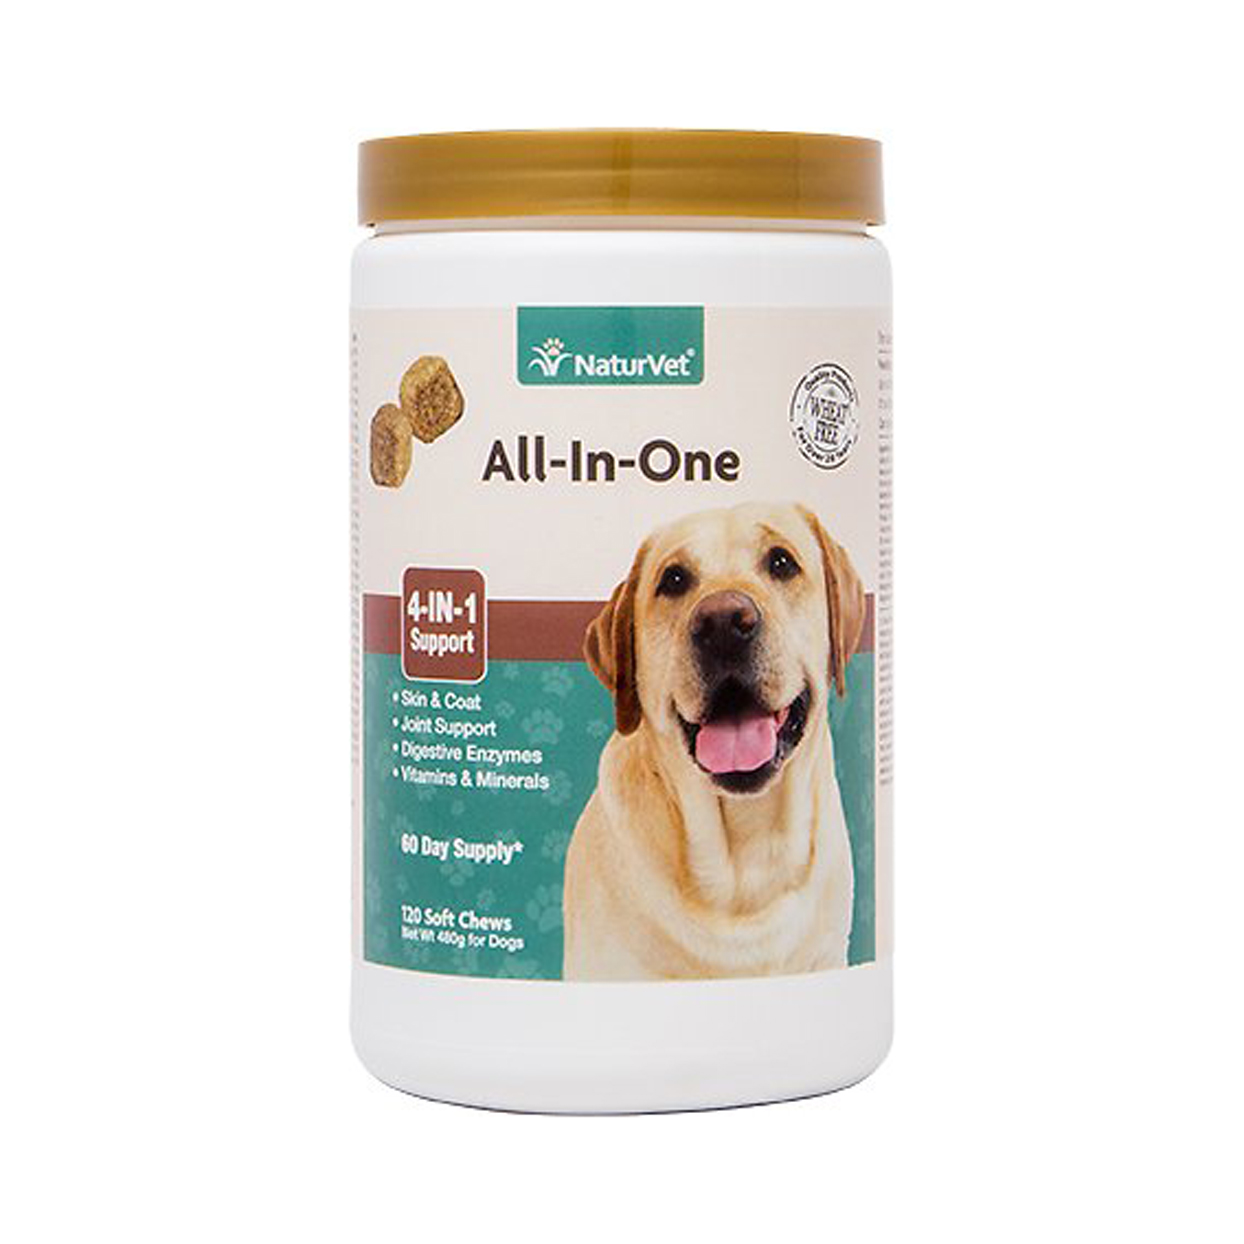 naturvet-all-in-one-support-soft-chews-dog-supplement